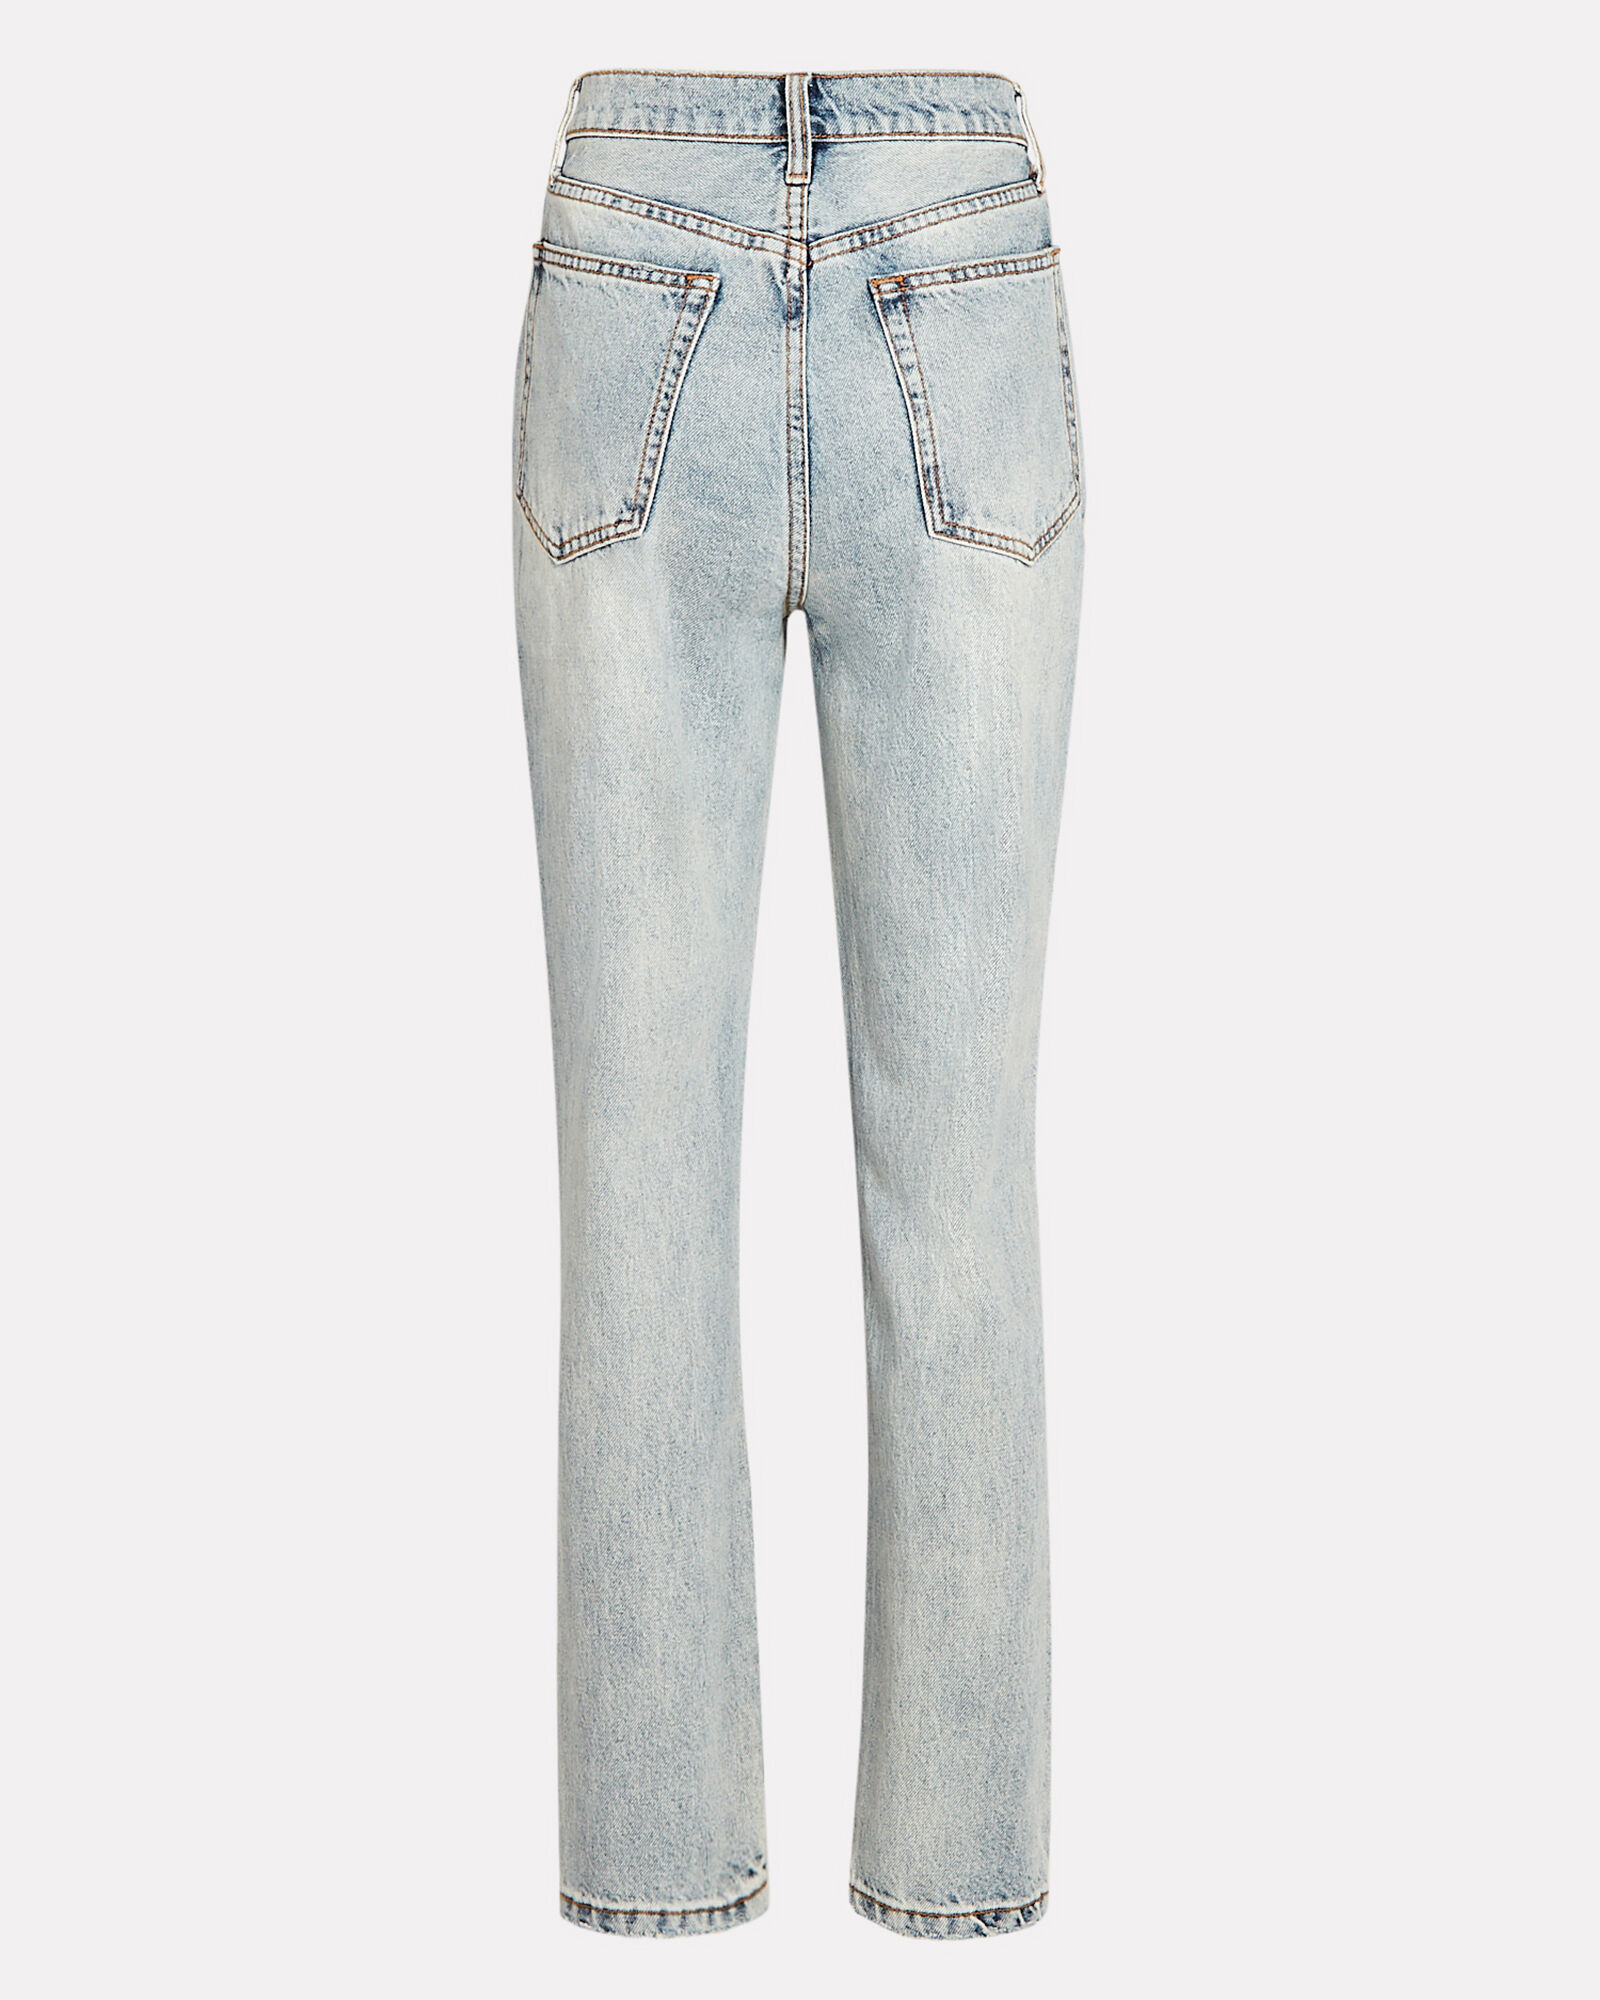 Danielle High-Rise Skinny Jeans, LIGHT VINTAGE, hi-res